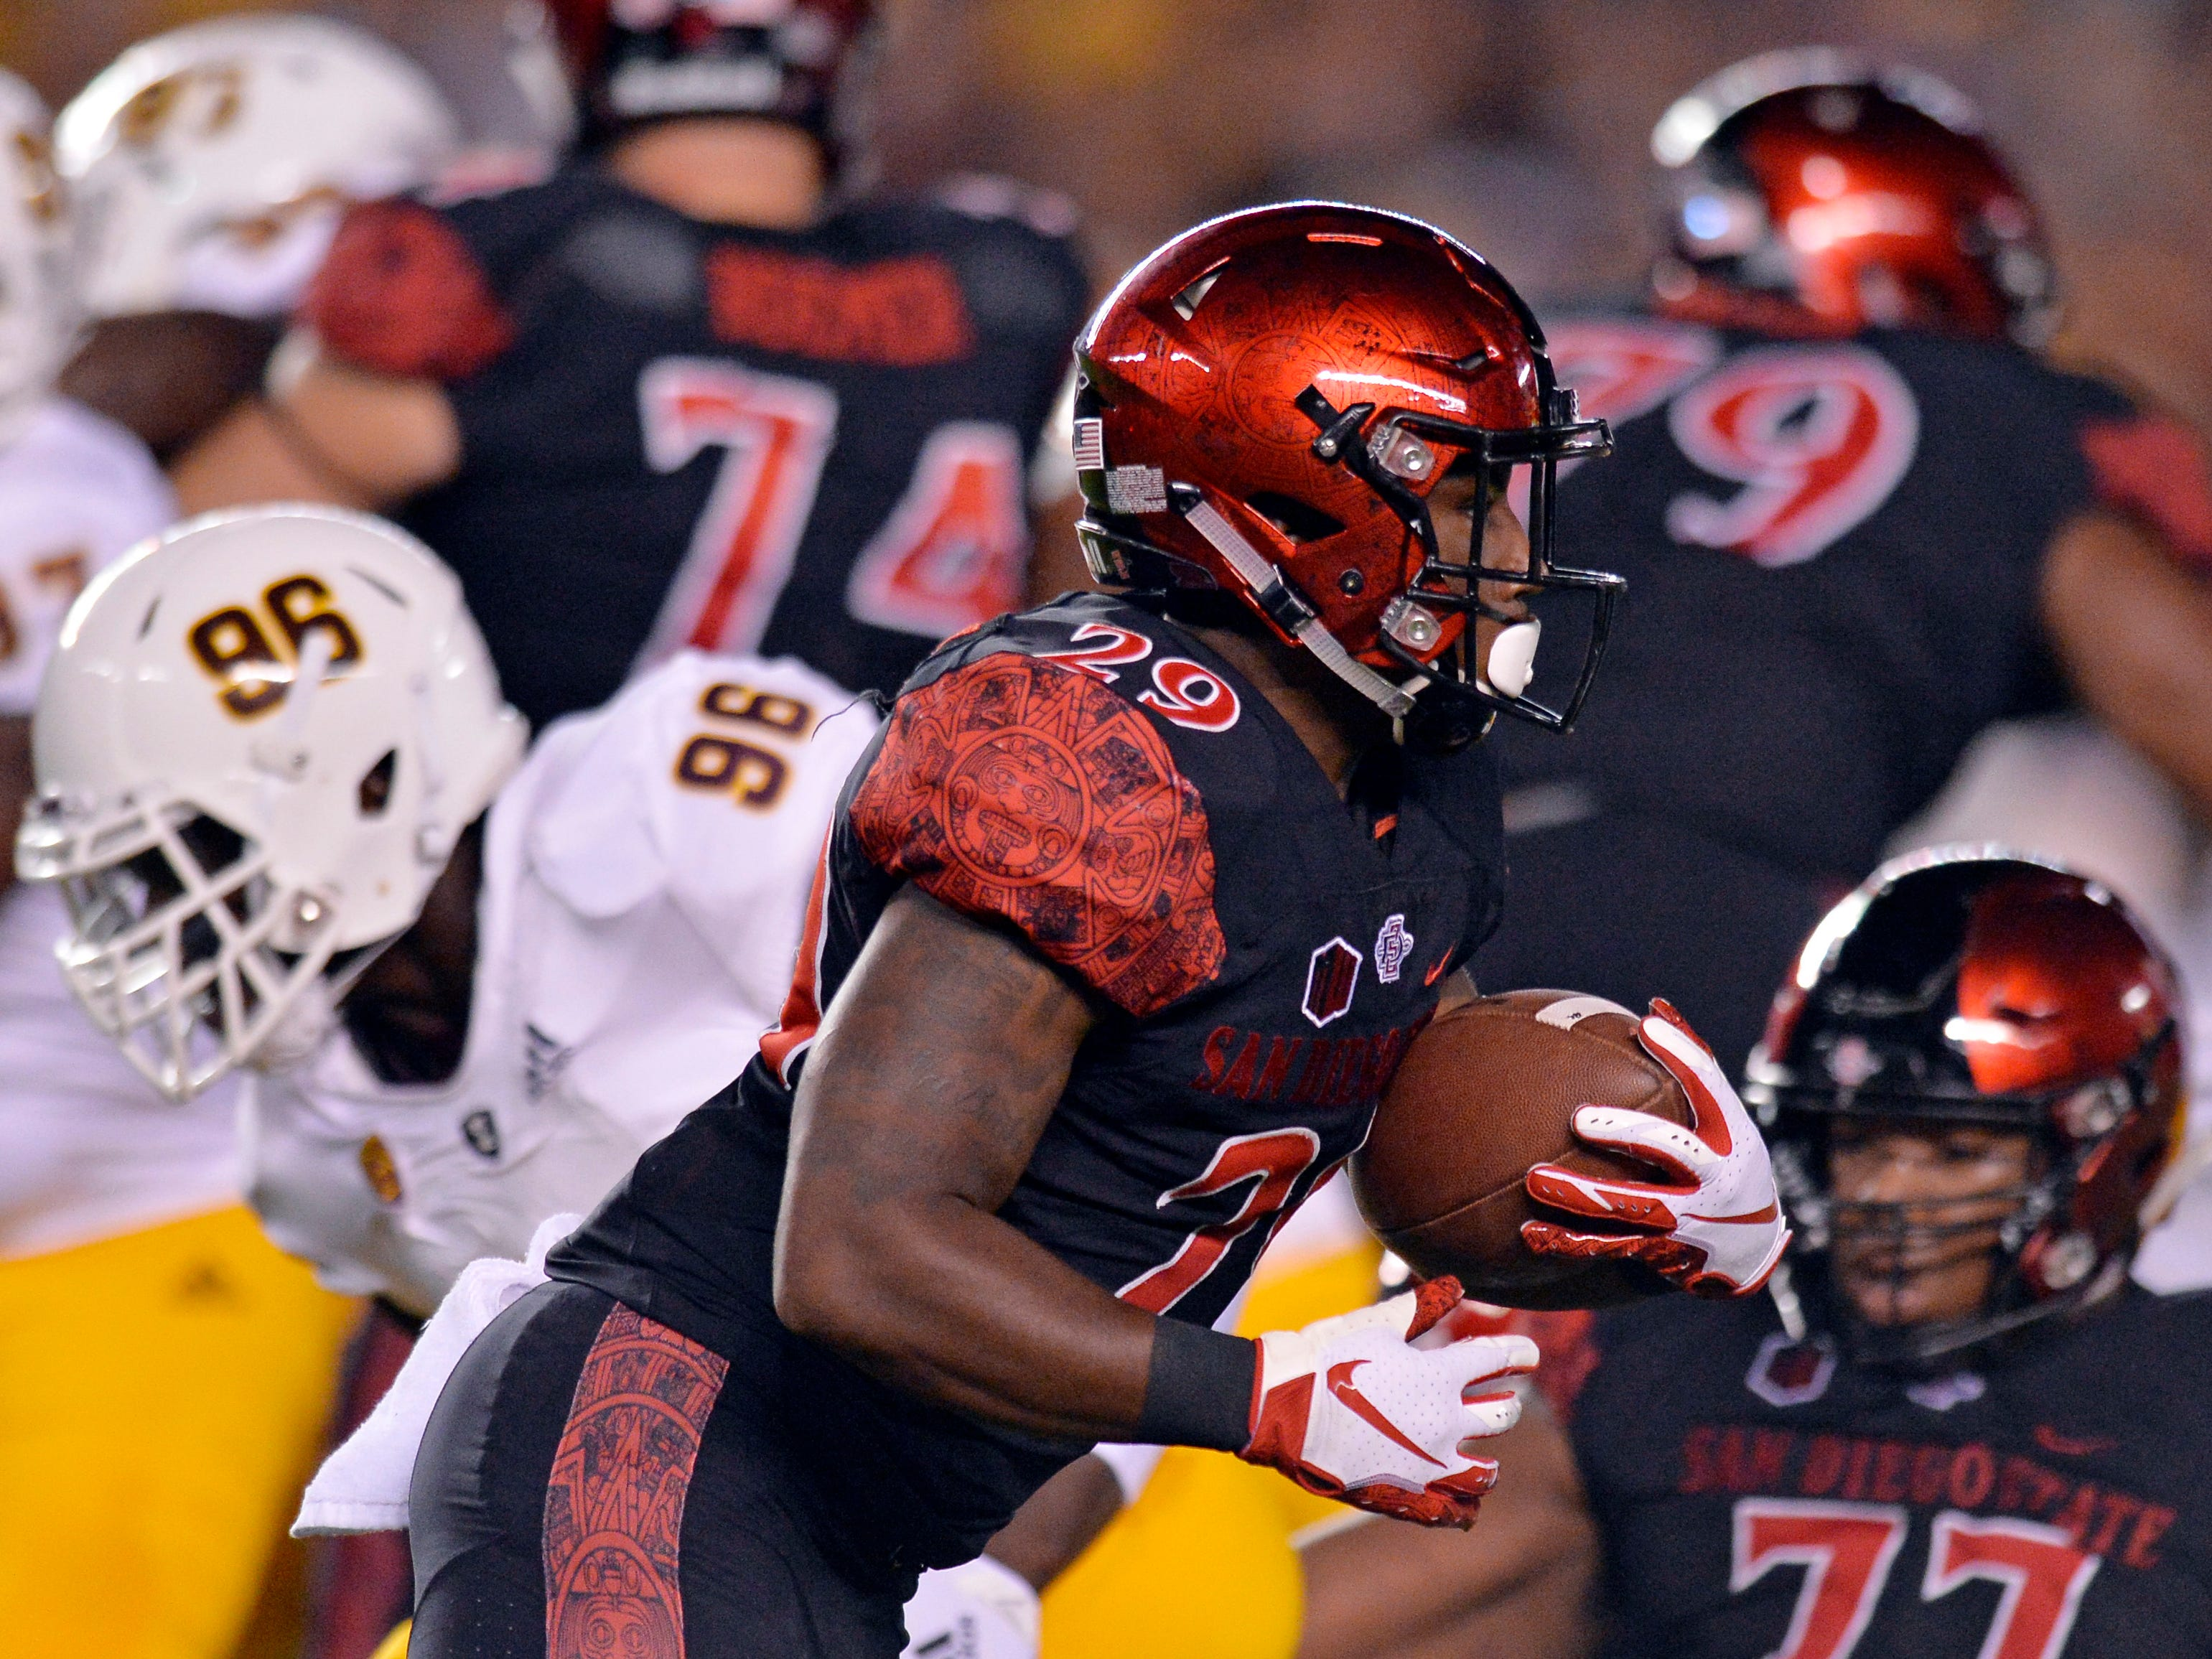 Sep 15, 2018; San Diego, CA, USA; San Diego State Aztecs running back Juwan Washington (29) runs against the Arizona State Sun Devils during the first quarter at SDCCU Stadium. Mandatory Credit: Jake Roth-USA TODAY Sports